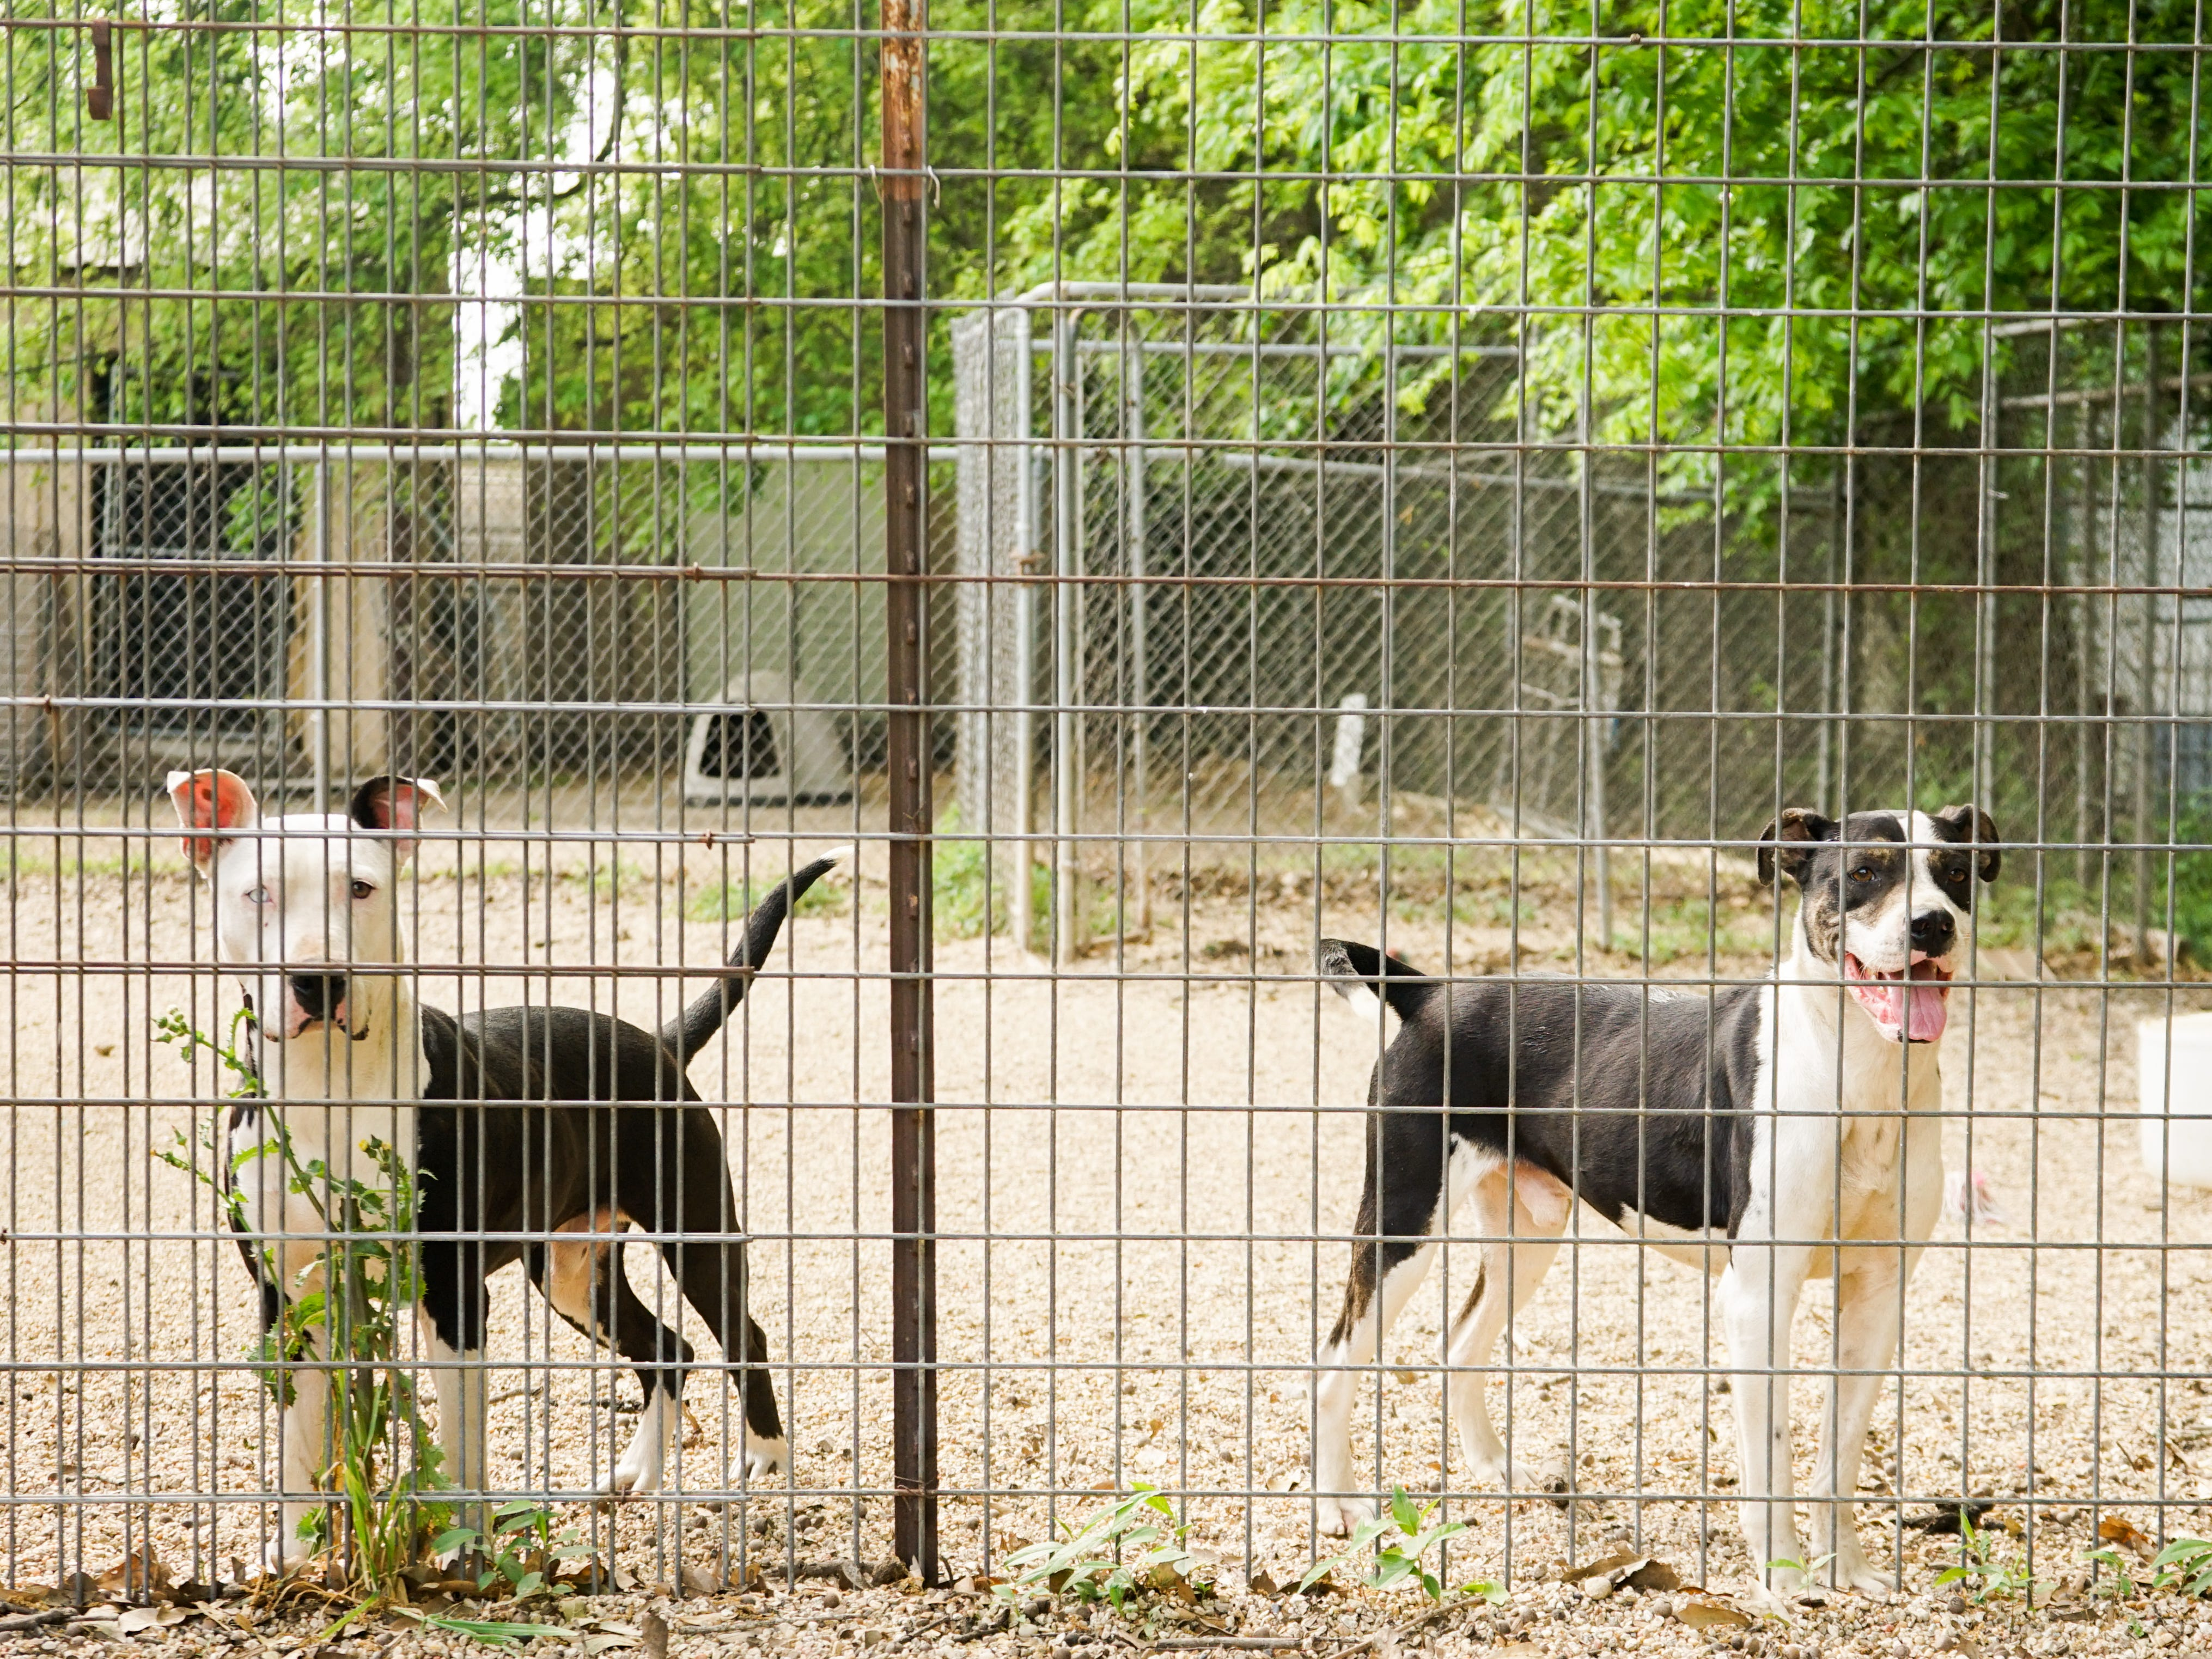 Dogs and cats await their fate at the Lafayette Parish Animal Shelter. Animals from the parish and across Acadiana have been transported in recent years to the northern and western part of the U.S. for adoption, where demand for adoptable pets has helped to curtail euthanasia rates locally.